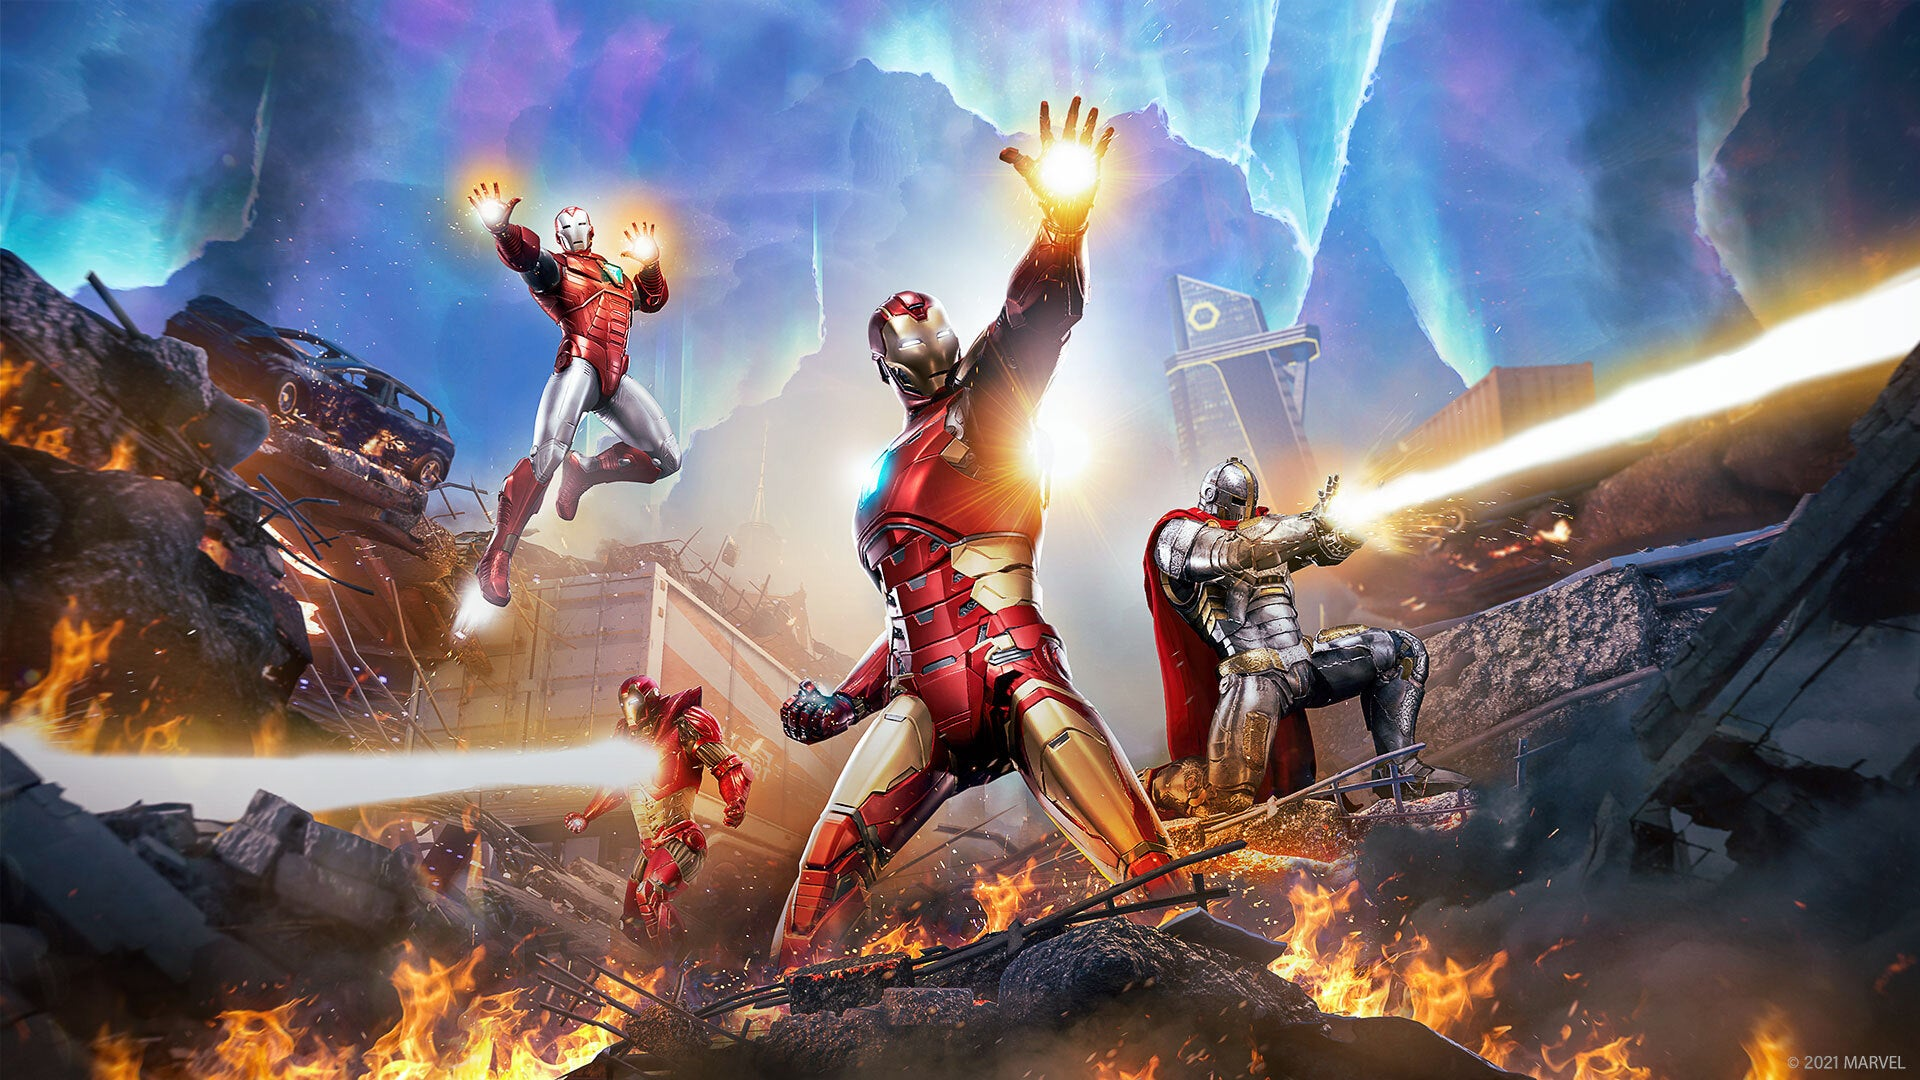 Four different Iron Man heroes fighting alongside each other in Marvel's Avengers